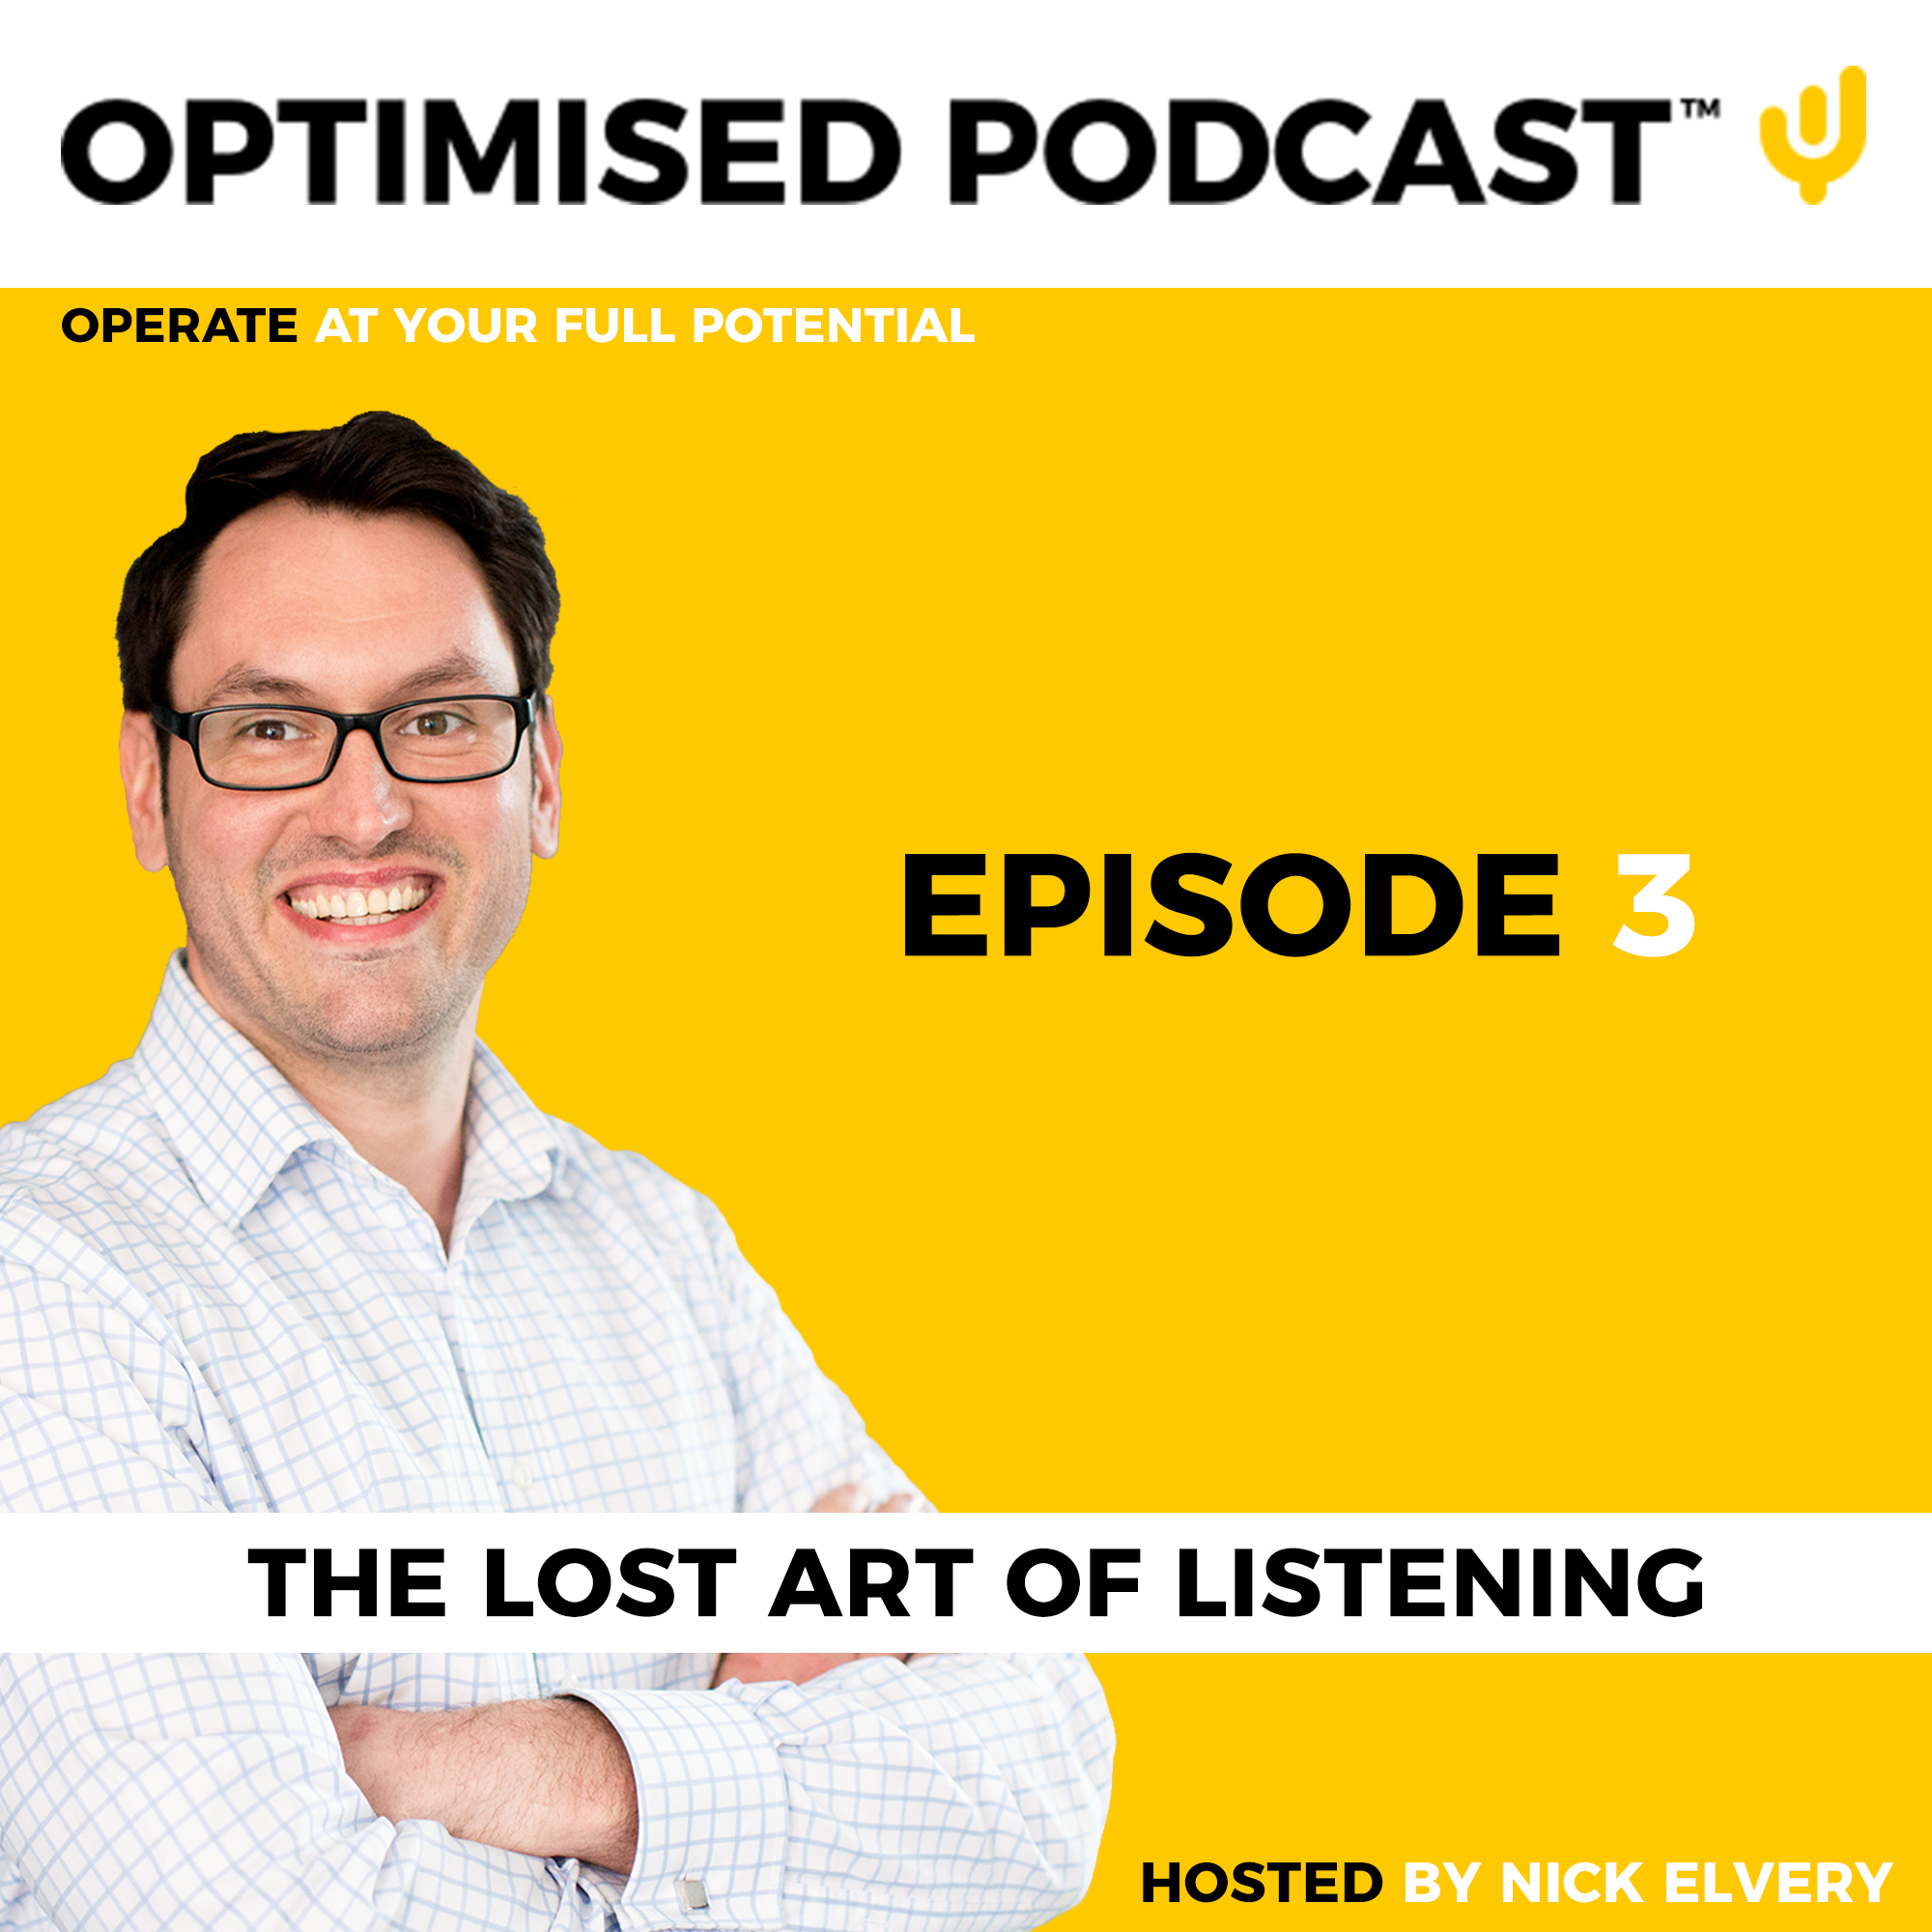 #3 - The lost art of listening with Nick Elvery